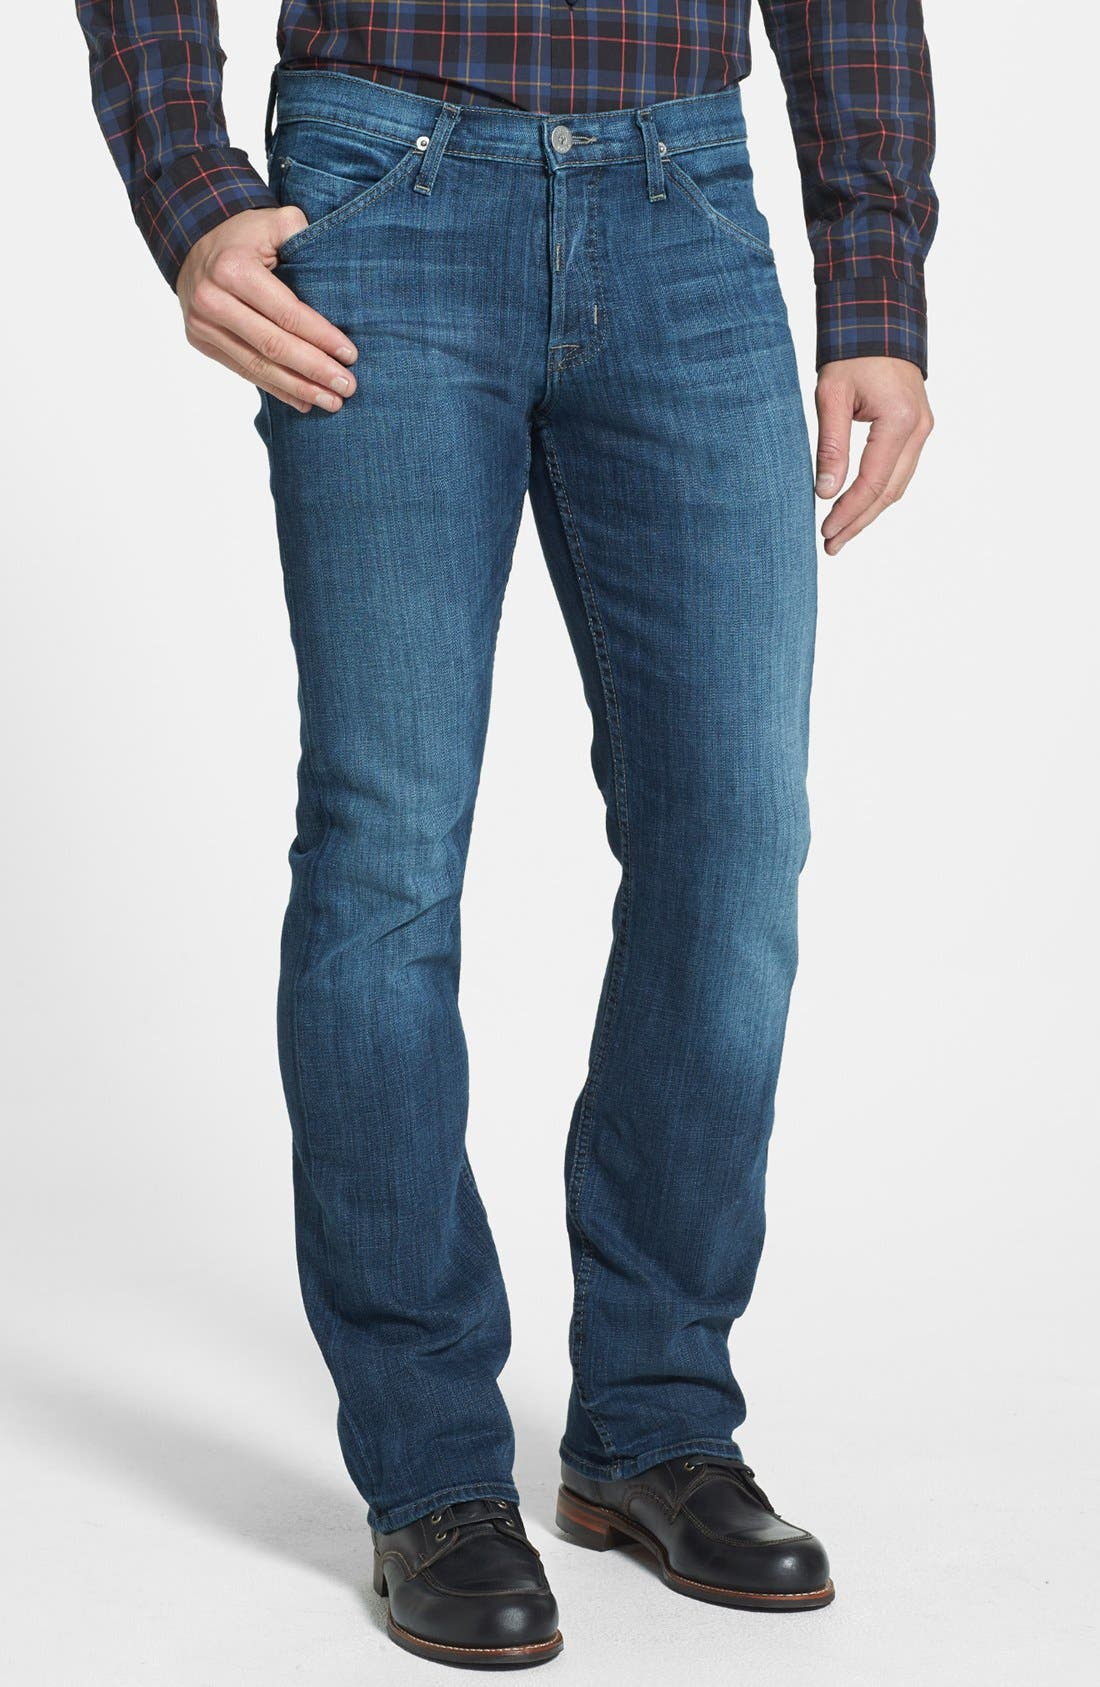 Alternate Image 1 Selected - Hudson Jeans 'Webber' Bootcut Jeans (Harris) (Online Exclusive)